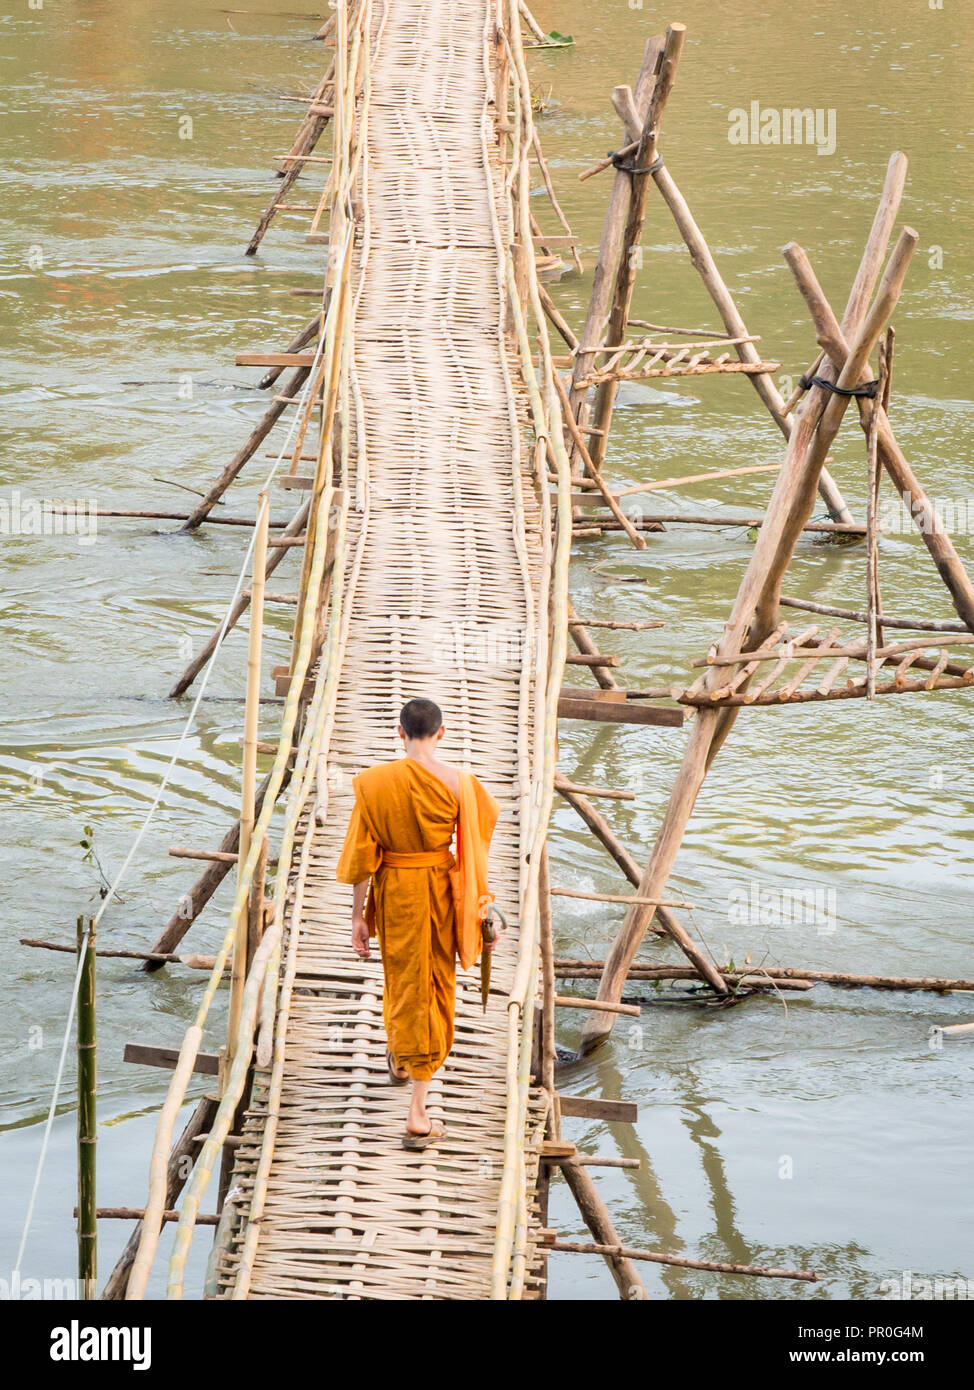 Orange-clad Buddhist monk crossing a bamboo bridge, Luang Prabang, Laos, Indochina, Southeast Asia, Asia Stock Photo